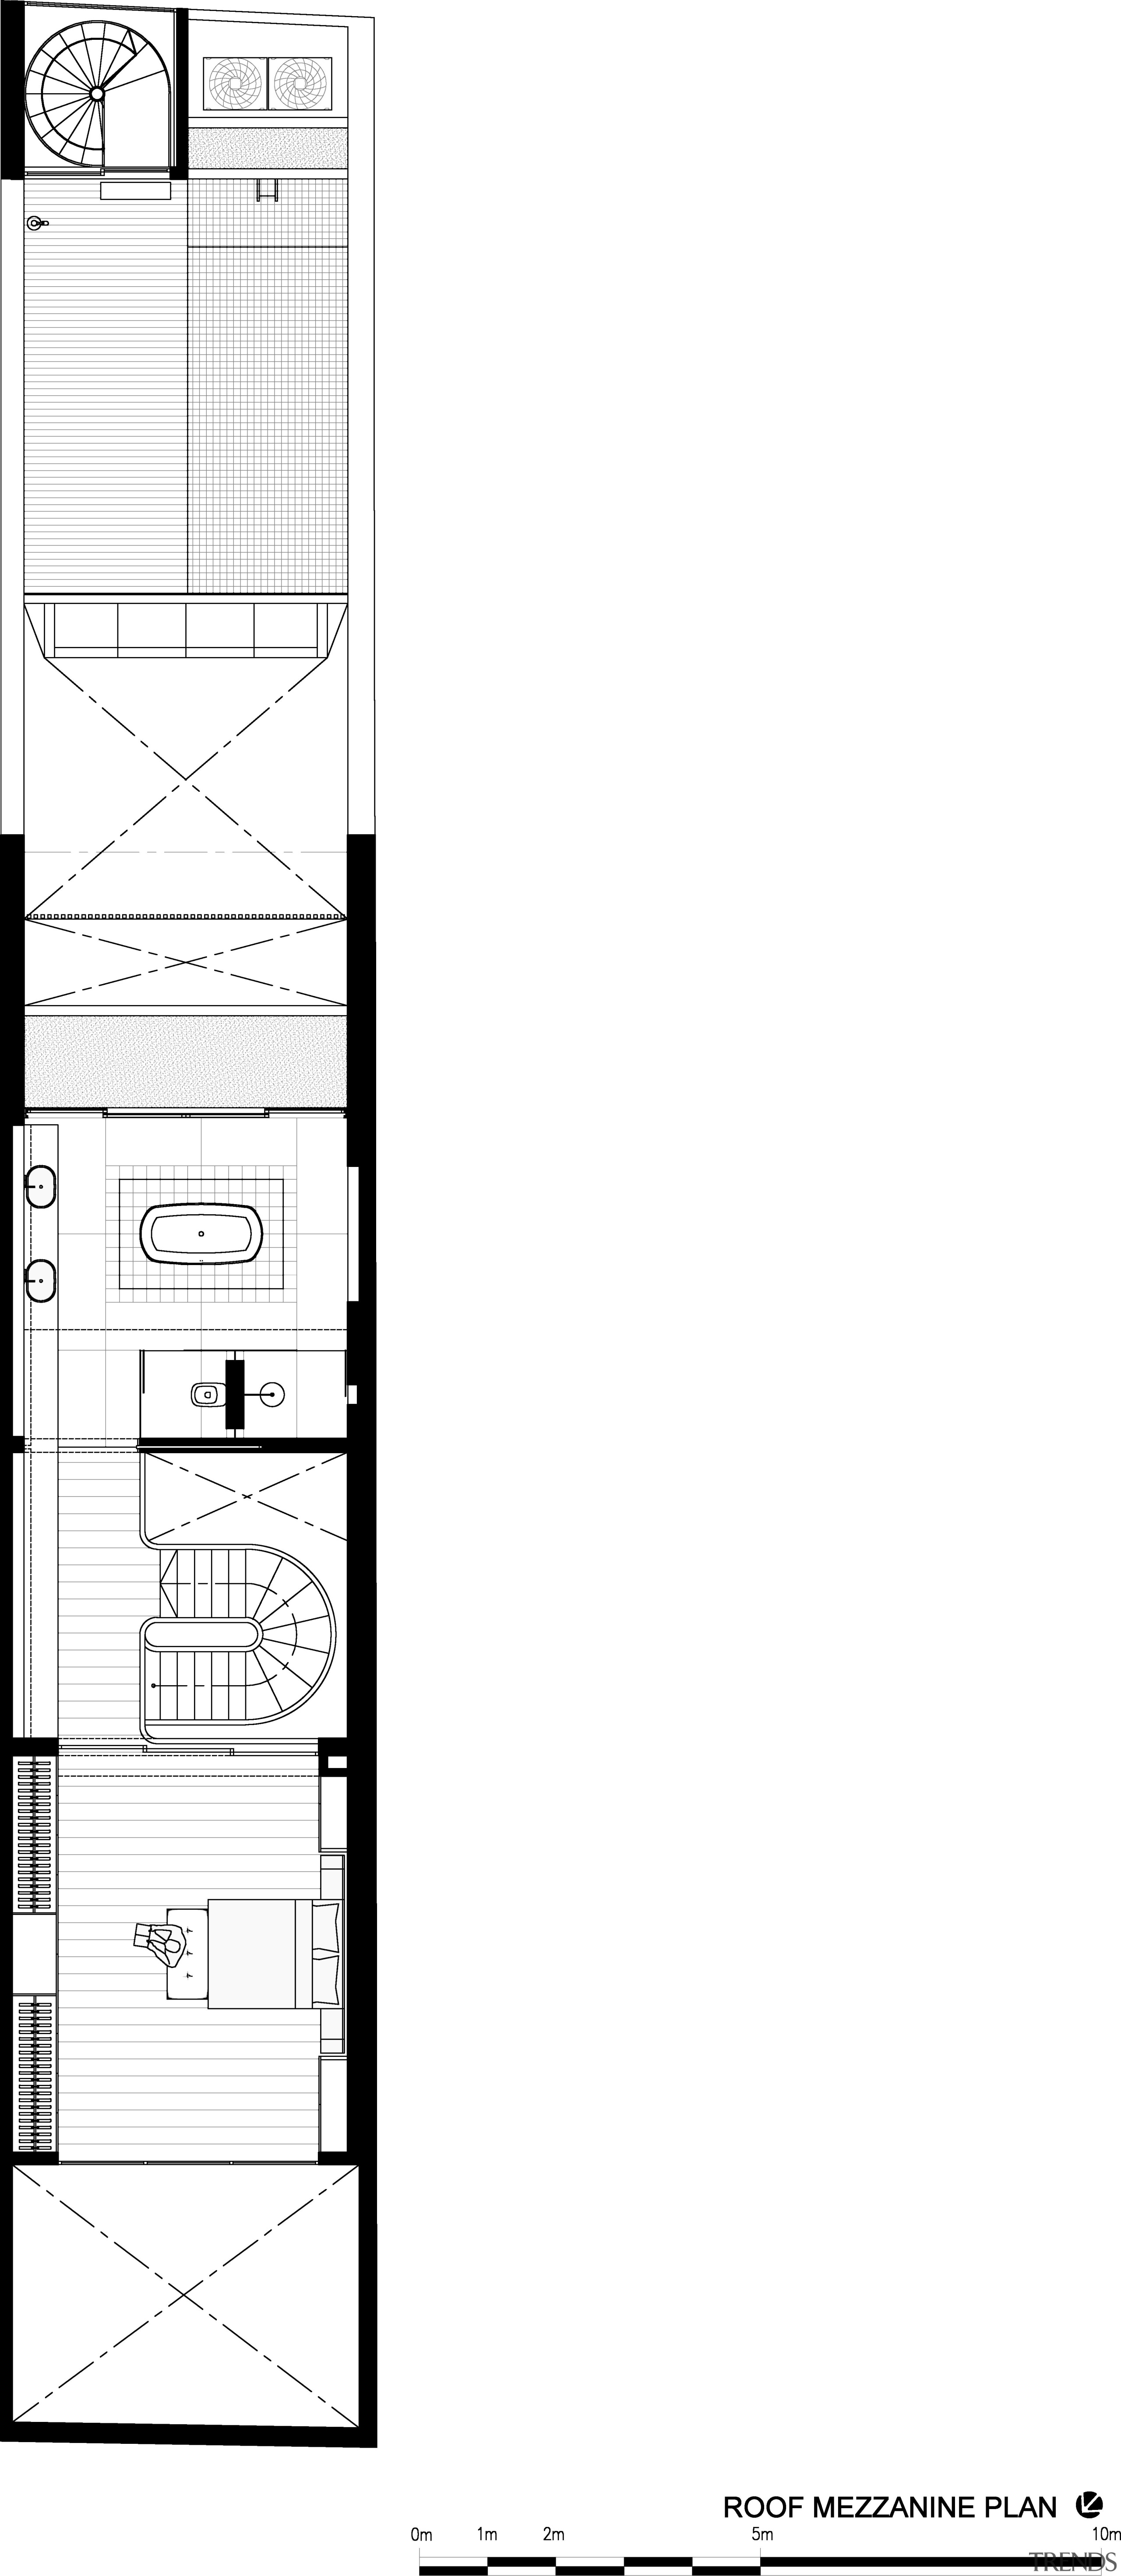 Attic floor plan of renovated Singapore shophouse - area, black and white, design, diagram, drawing, floor plan, font, line, paper, product design, structure, text, white